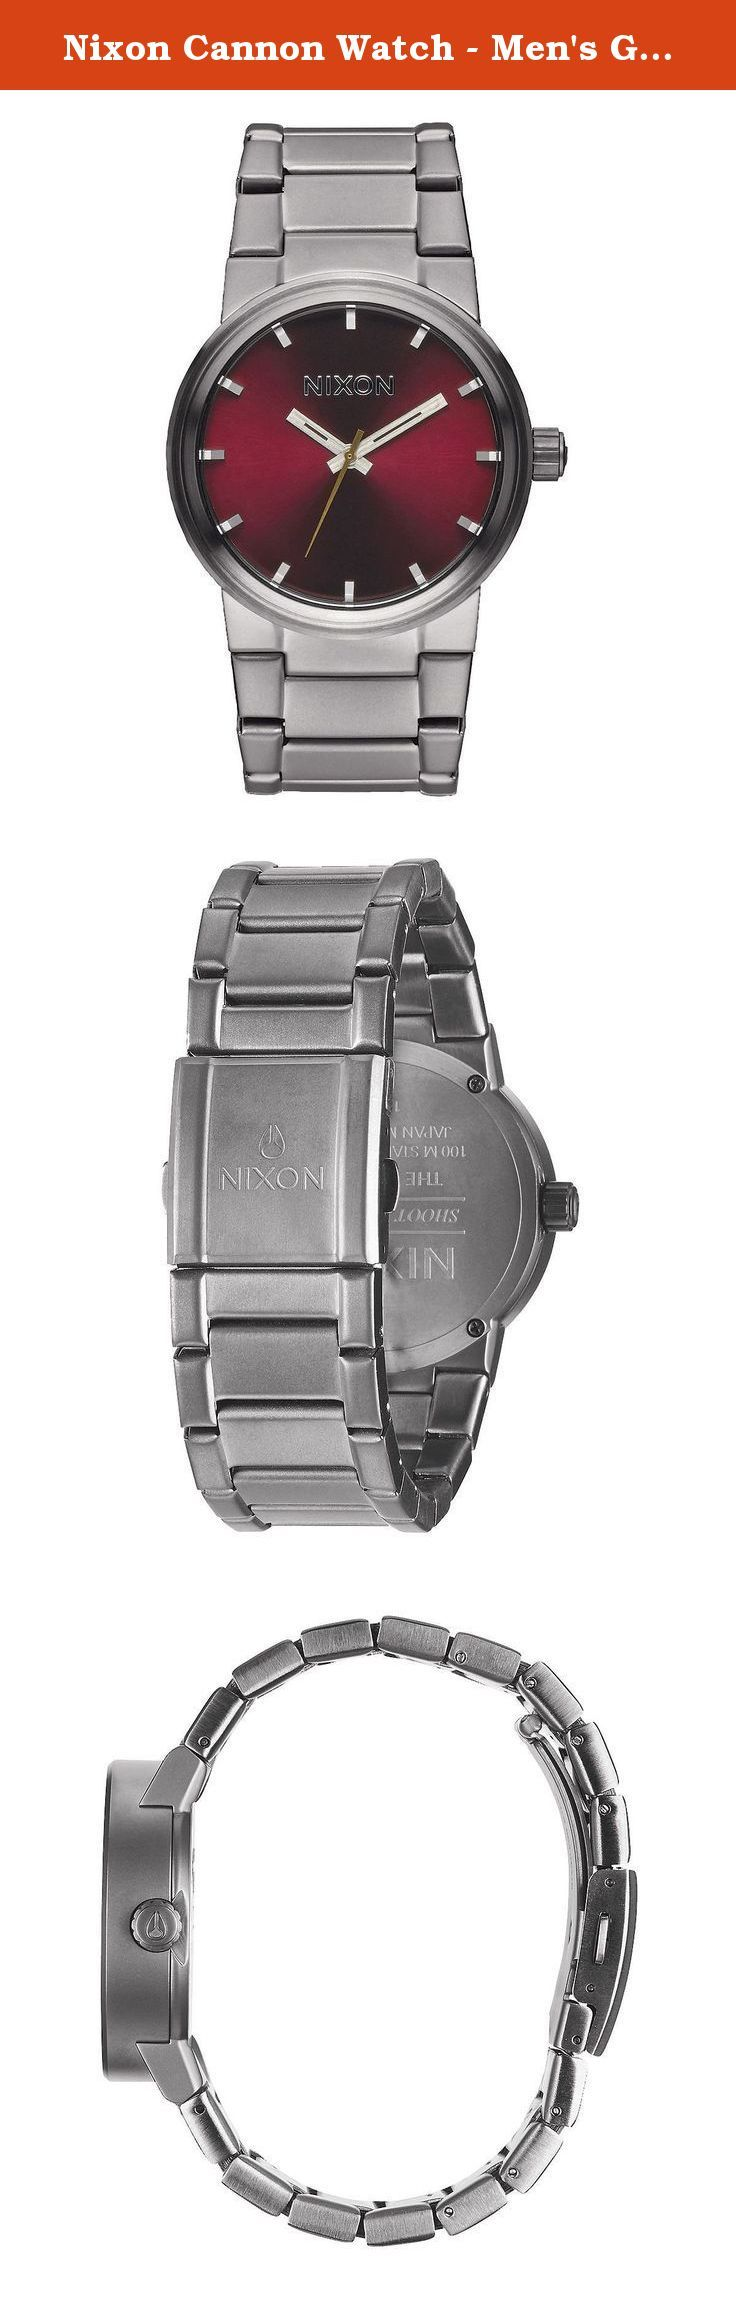 Nixon Cannon Watch - Men's Gunmetal/Deep Burgundy, One Size. Blow past your competition with the stainless steel Nixon Men's Cannon Watch. Waterproof to 100 meters, this Nixon timepiece keeps ticking if you have to run though a creek to stay ahead of the game. The simple, minimal watch face tells time without all that number-clutter so you can take a quick glance and still get your info. The Cannon Watch's stainless steel case and band hold up to the wear and tear it takes to win…